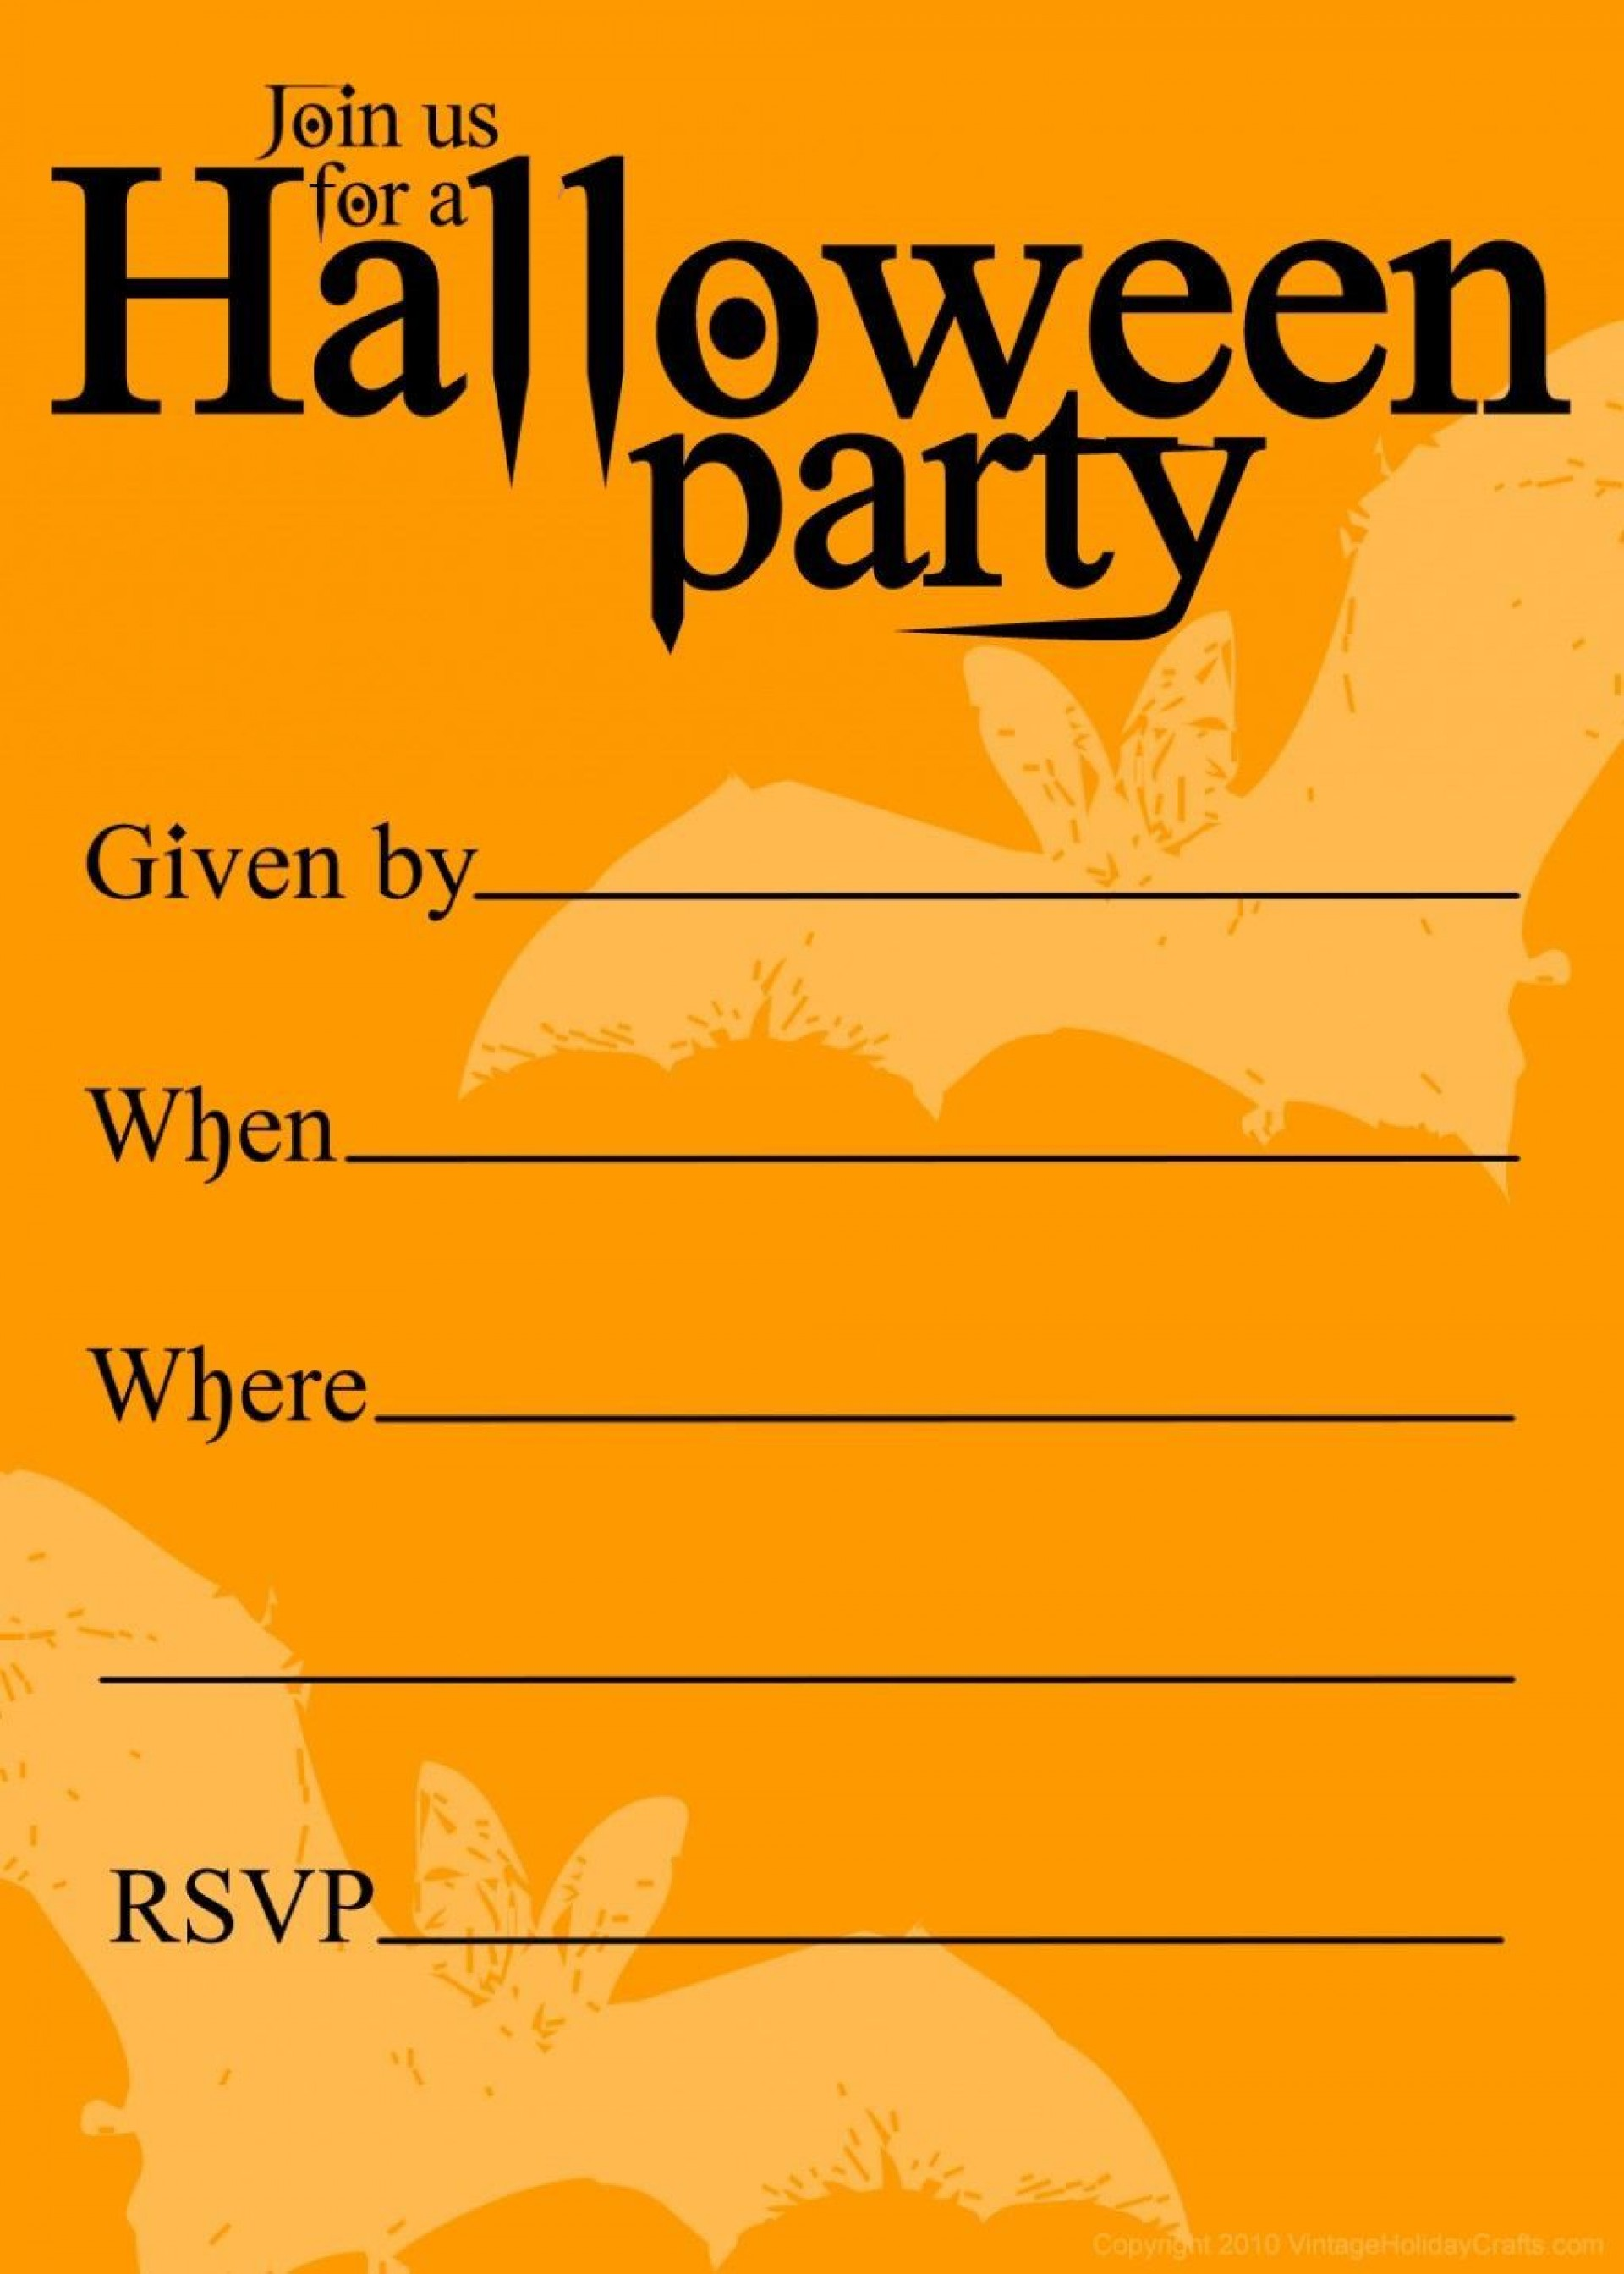 001 Incredible Halloween Party Invite Template Inspiration  Spooky Invitation Free Printable Birthday Download1920